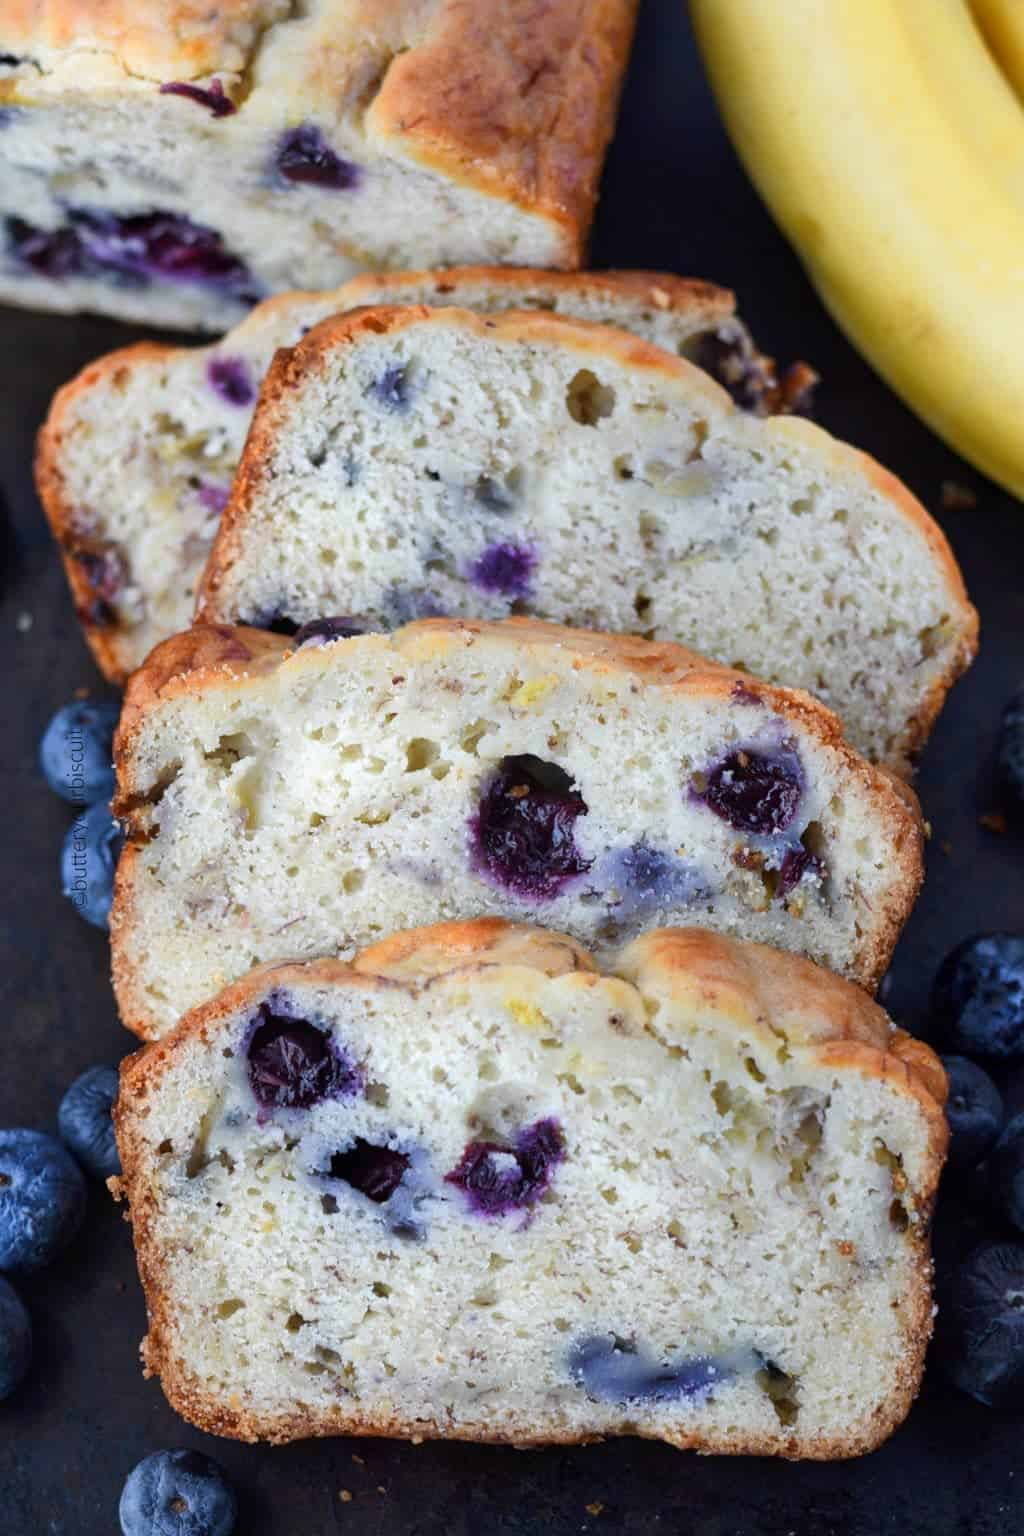 Banana blueberry bread with cream cheese butter your biscuit banana blueberry cream cheese bread on a cutting board scliced forumfinder Images